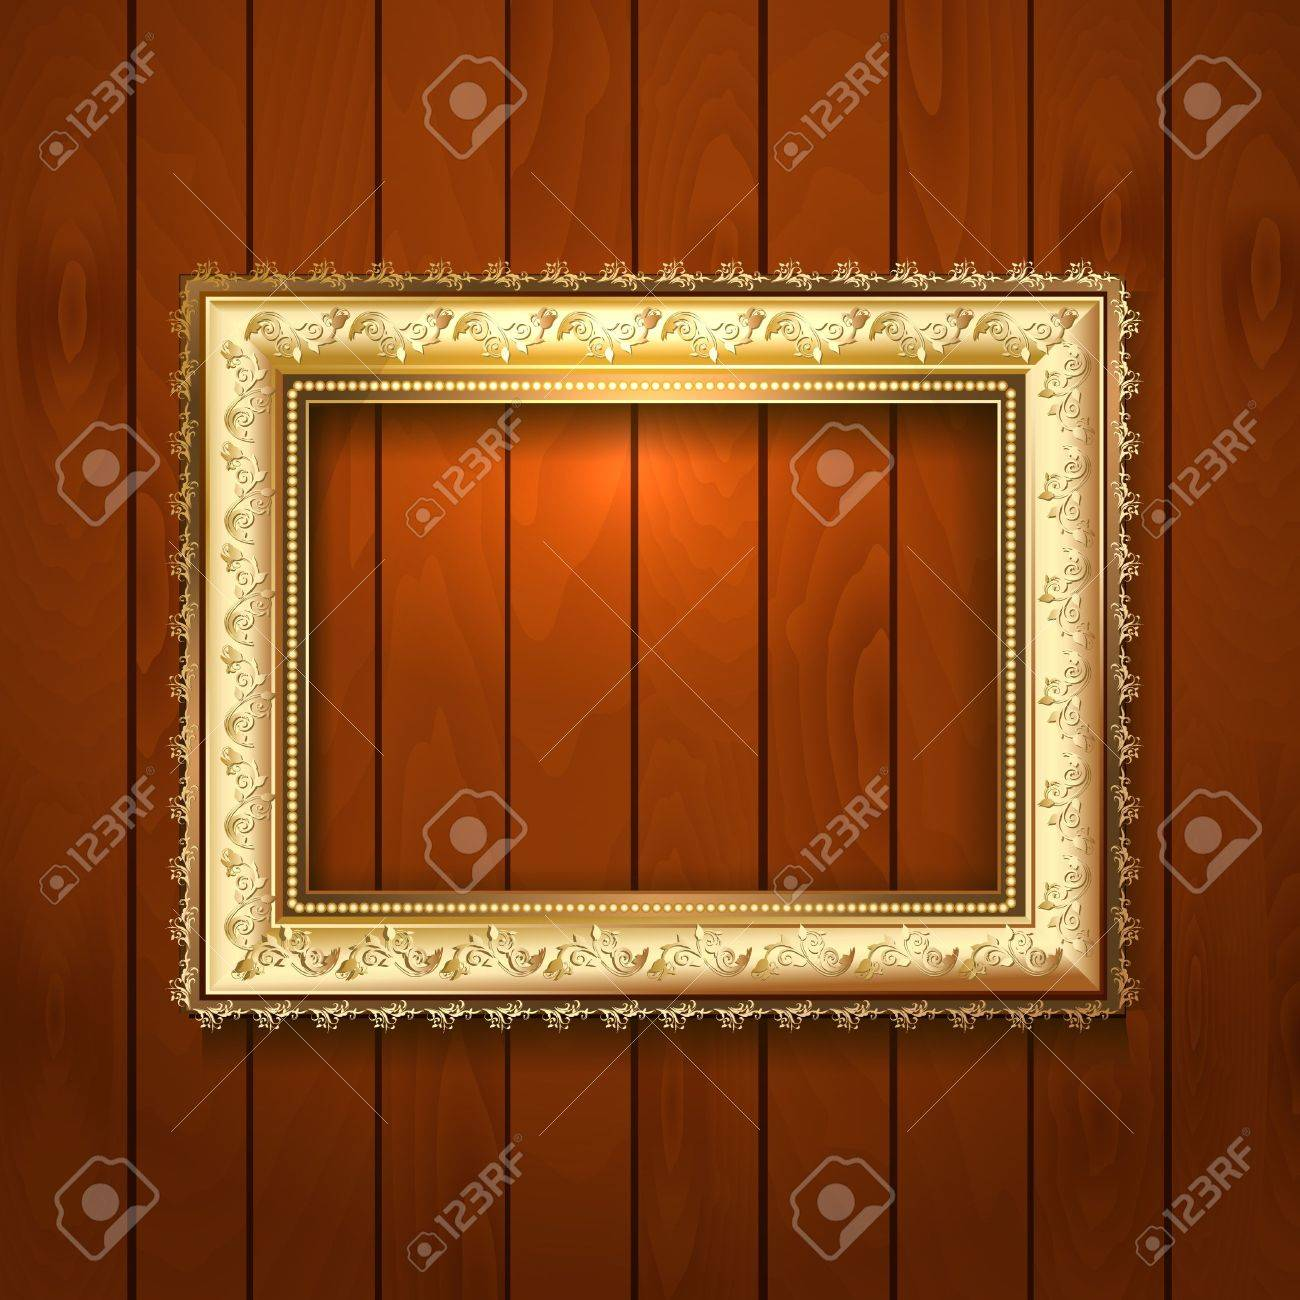 Vintage gold frame on a wooden texture Stock Vector - 17680125